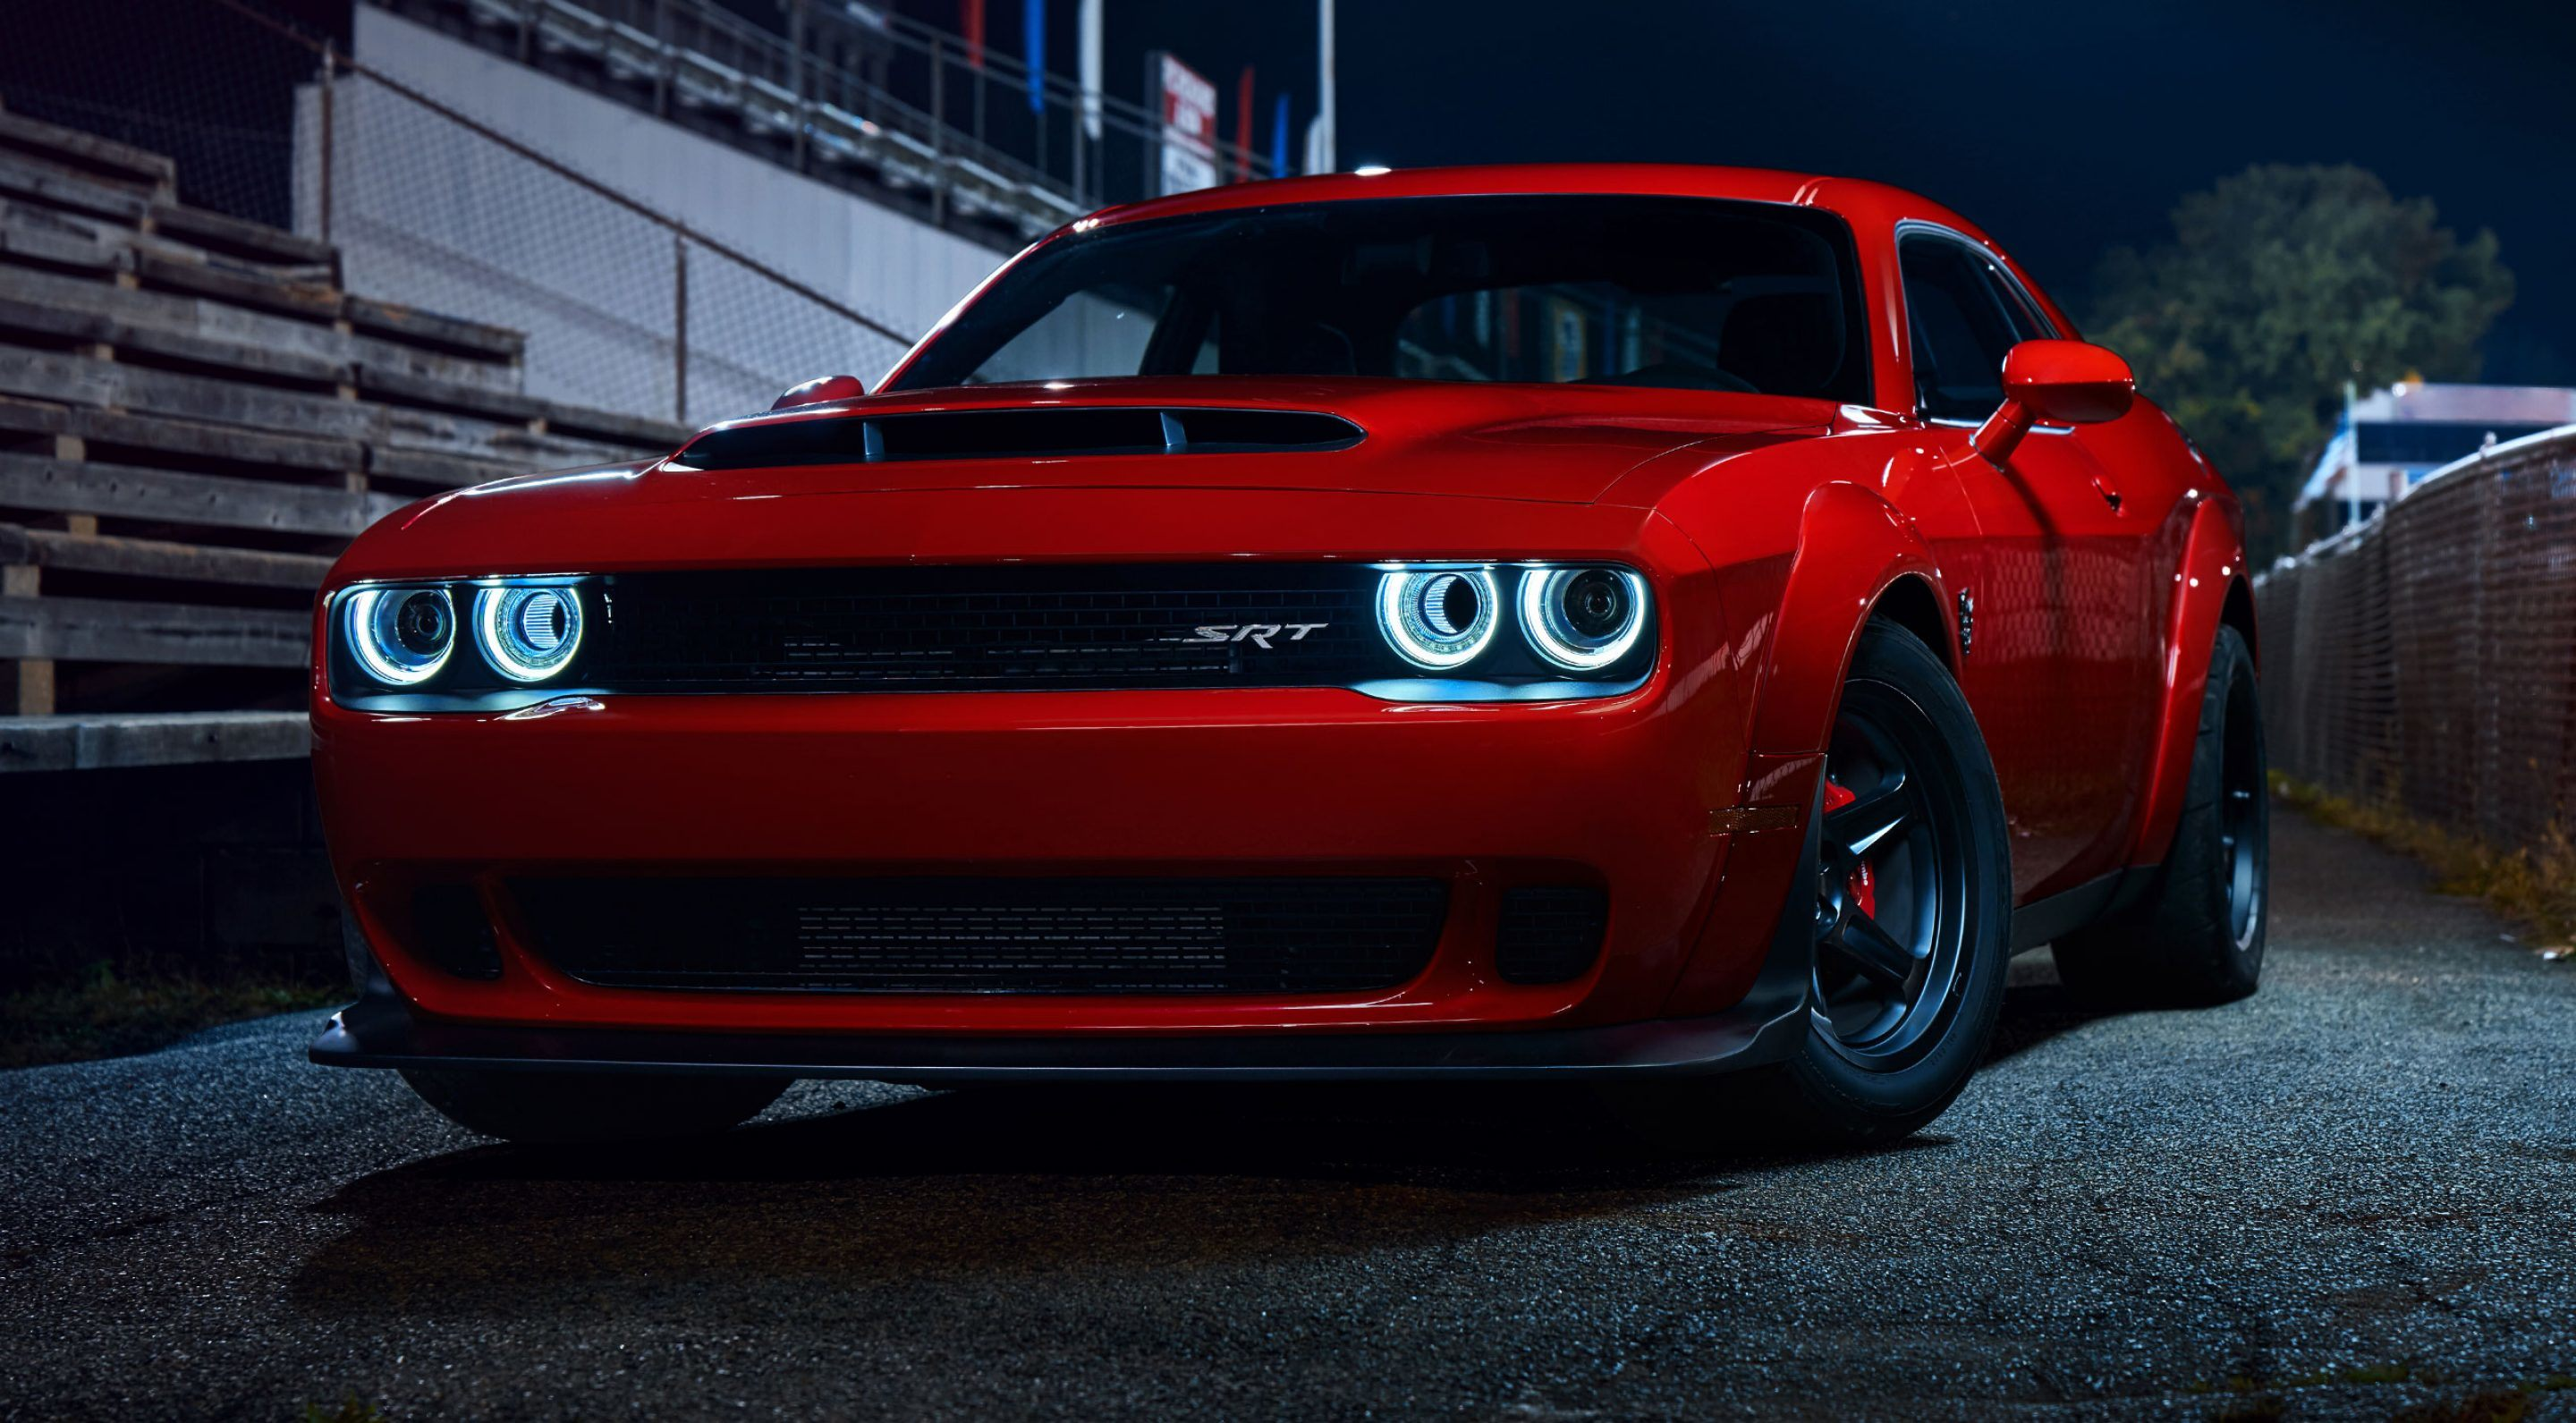 2018 Dodge Demon Exterior0